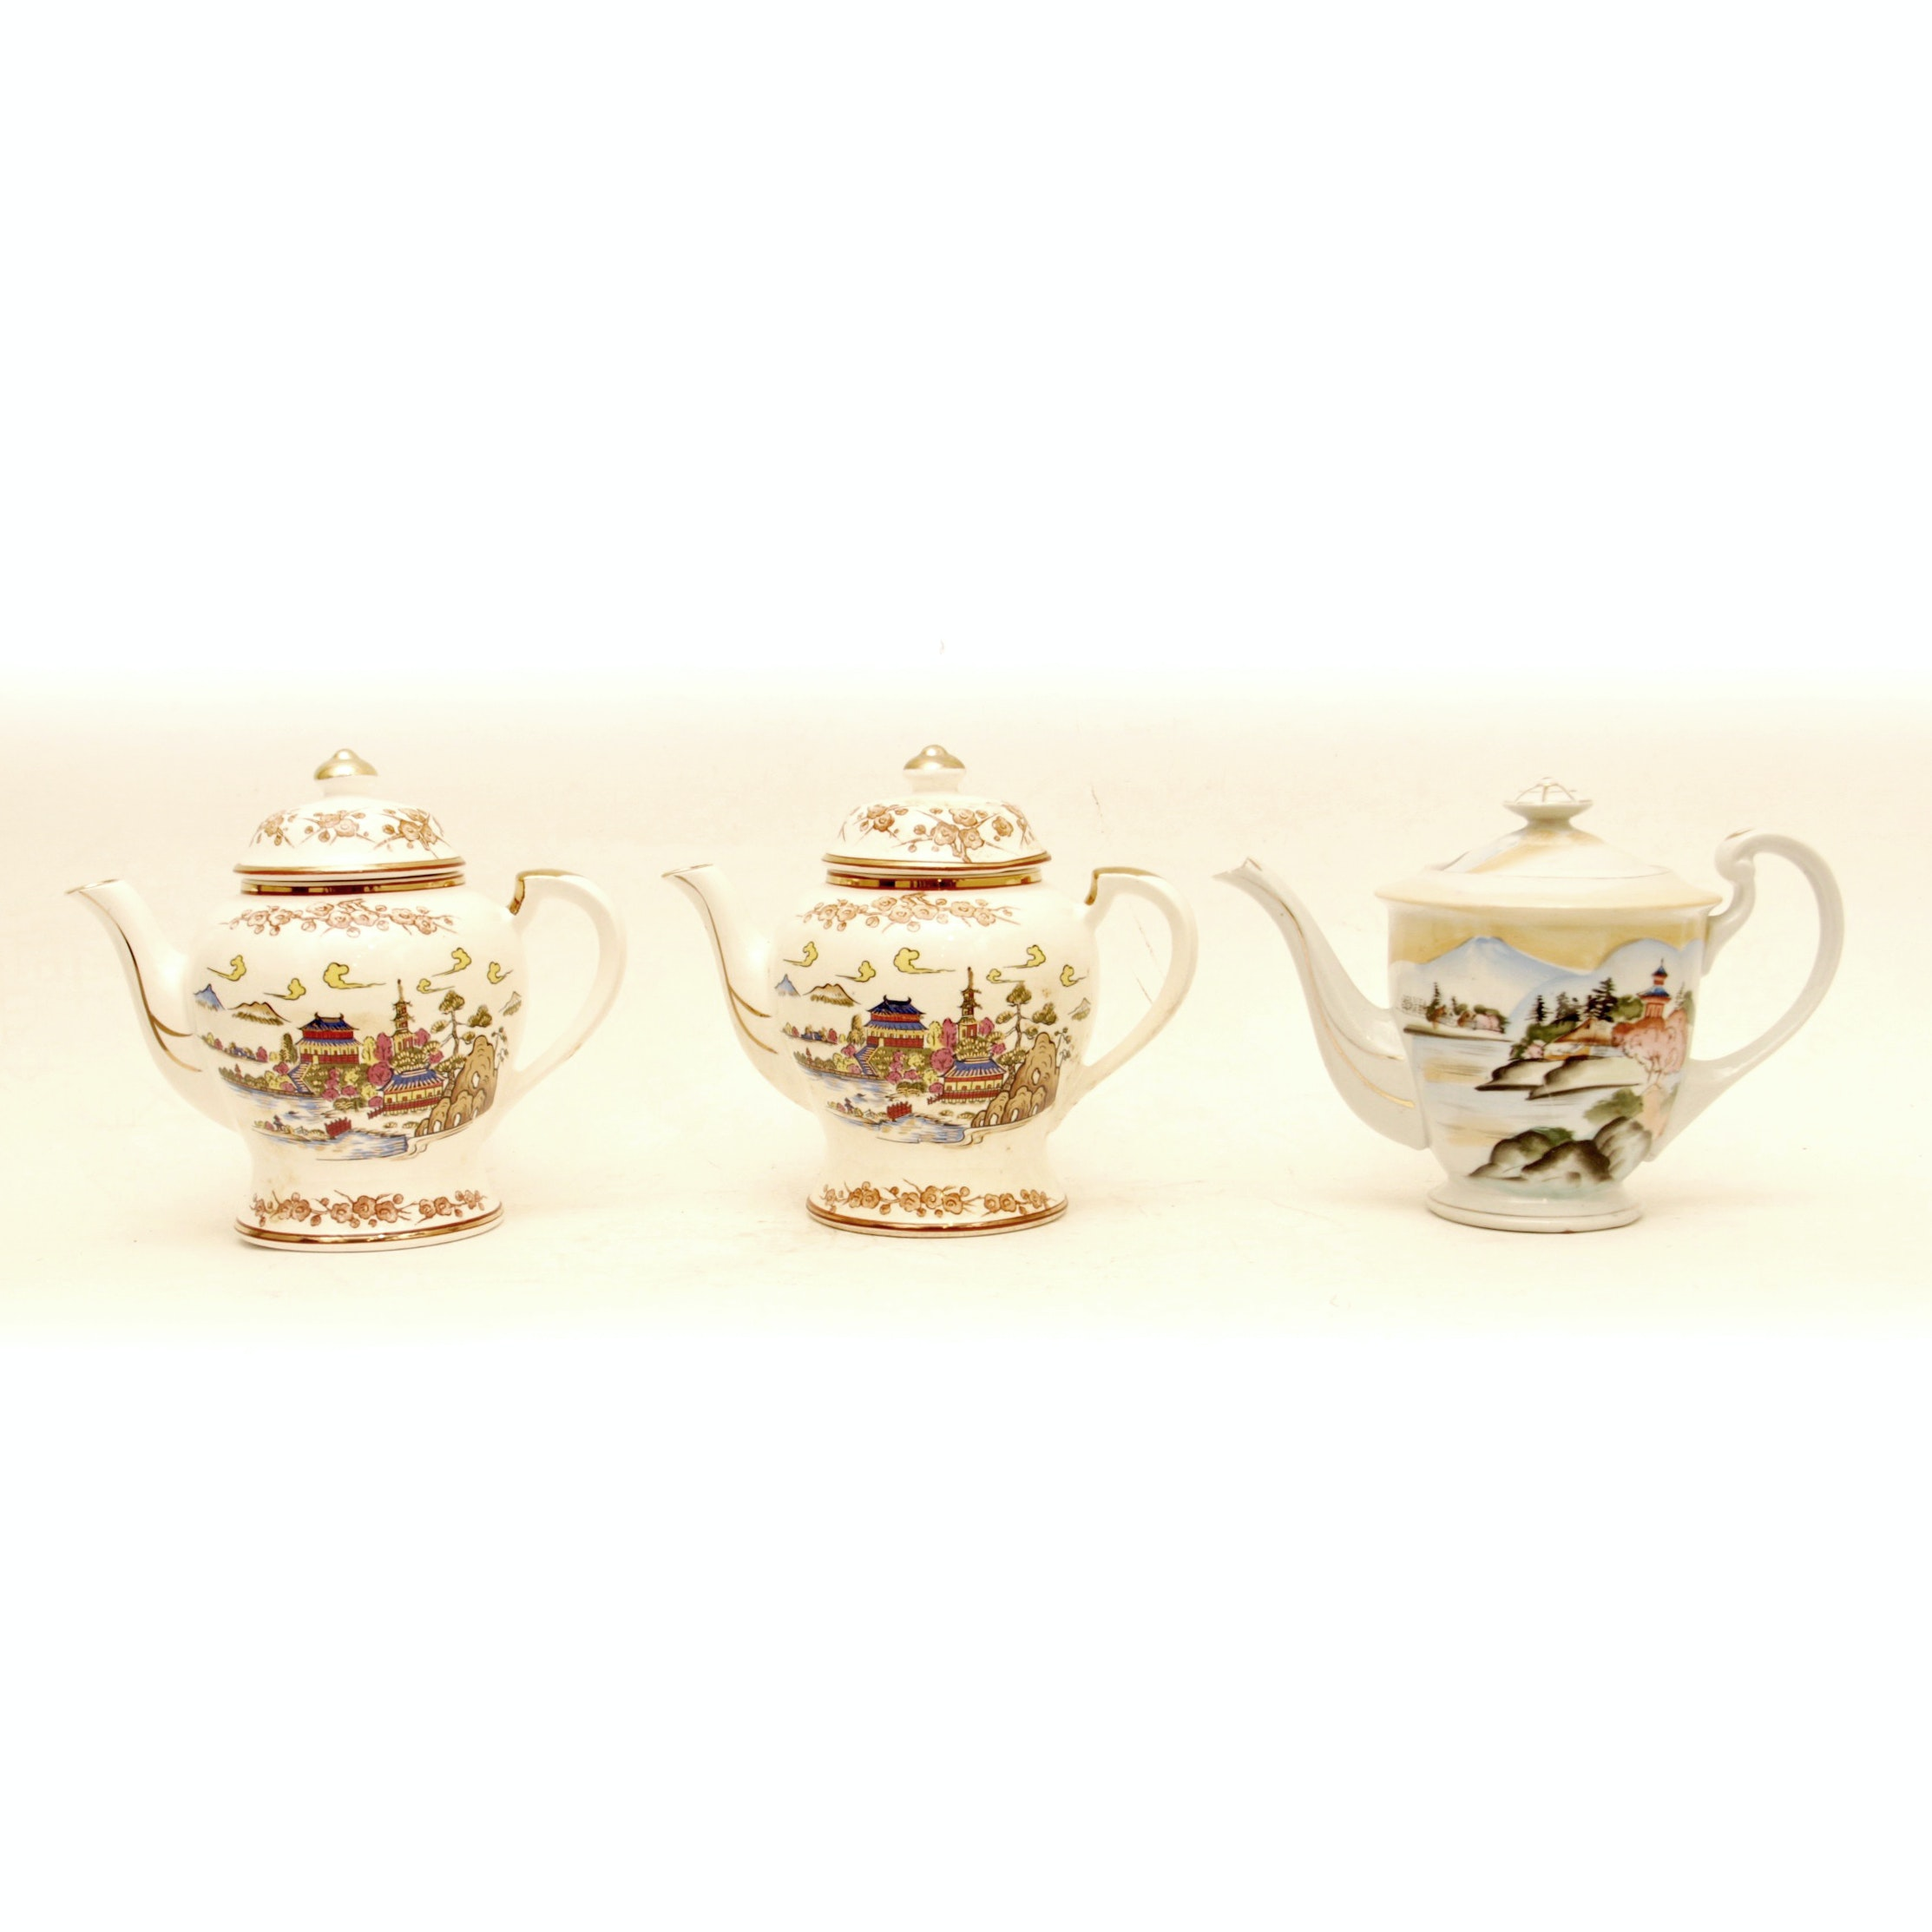 China Tea Pots Made in Japan